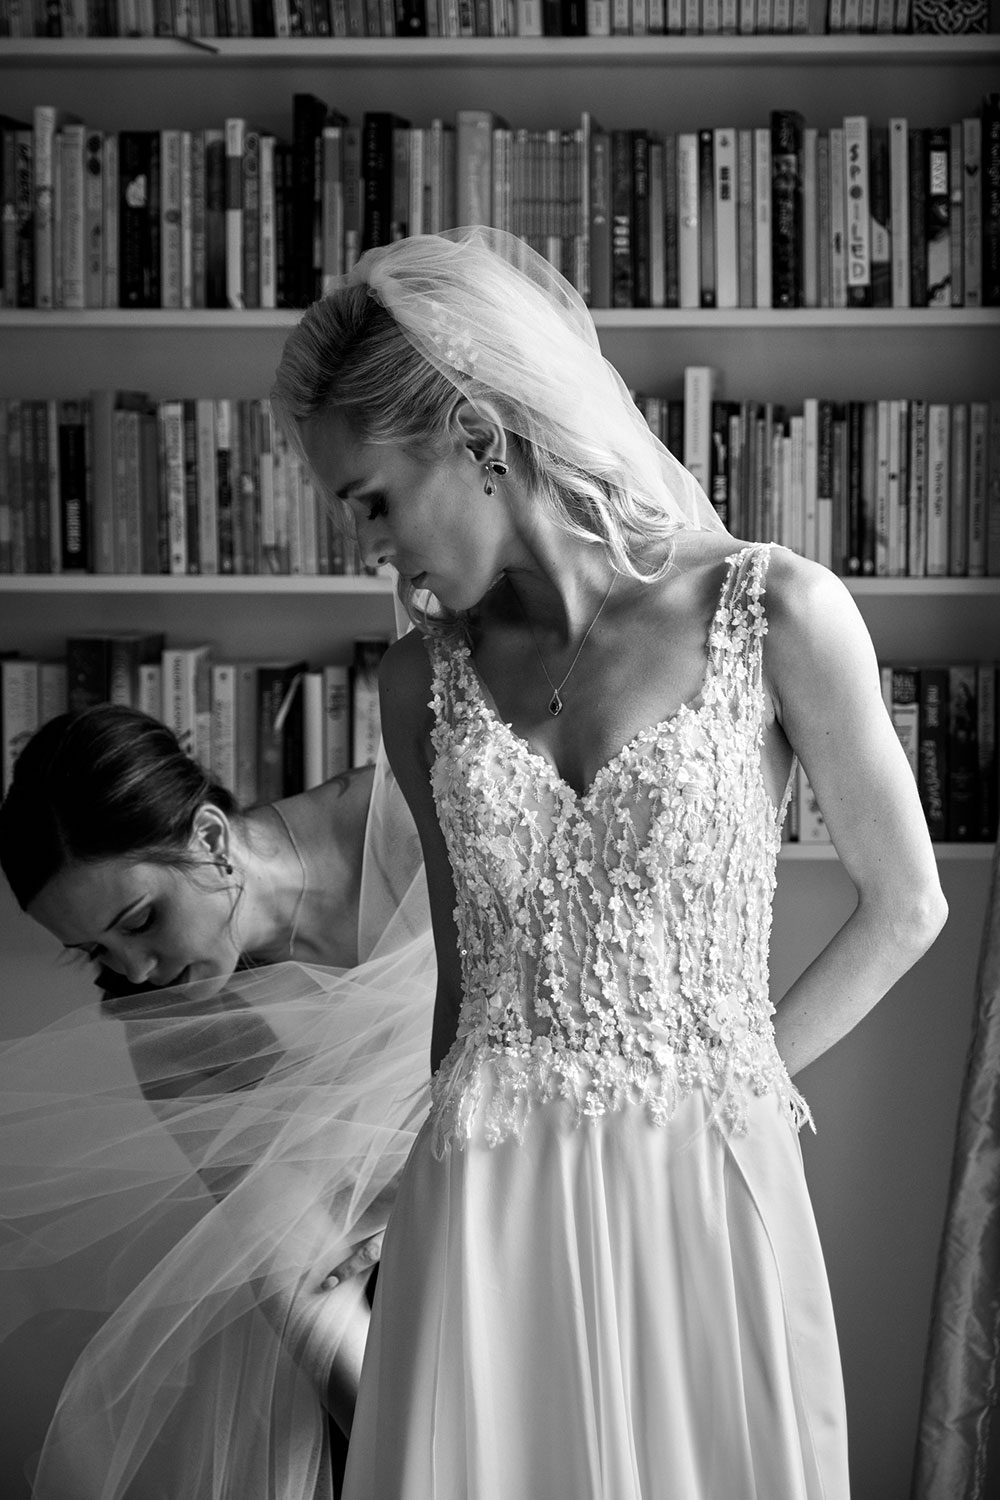 Bride wearing bespoke gown made of silk chiffon with delicate flower lace bodice by Vinka bridal designer Auckland - black and white looking down at veil